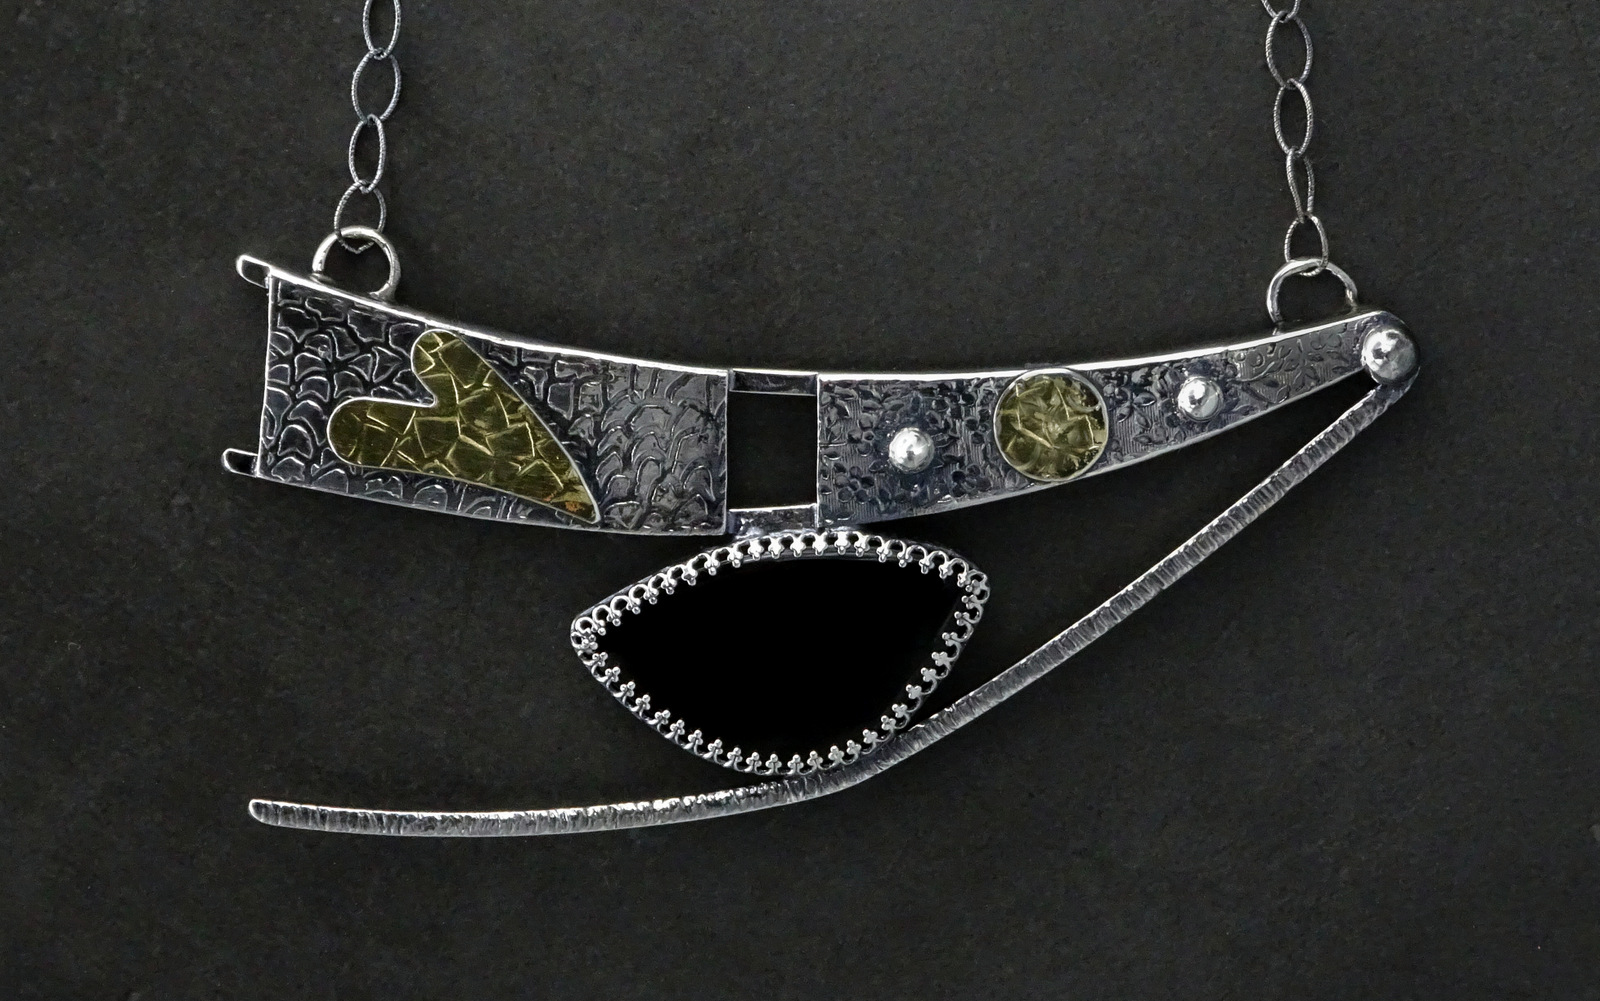 LARGE DANCING SPIRIT NECKLACE WITH BLACK STONE,  Pendant - 5 x 2.65 inches, Chain Length - 24 inches